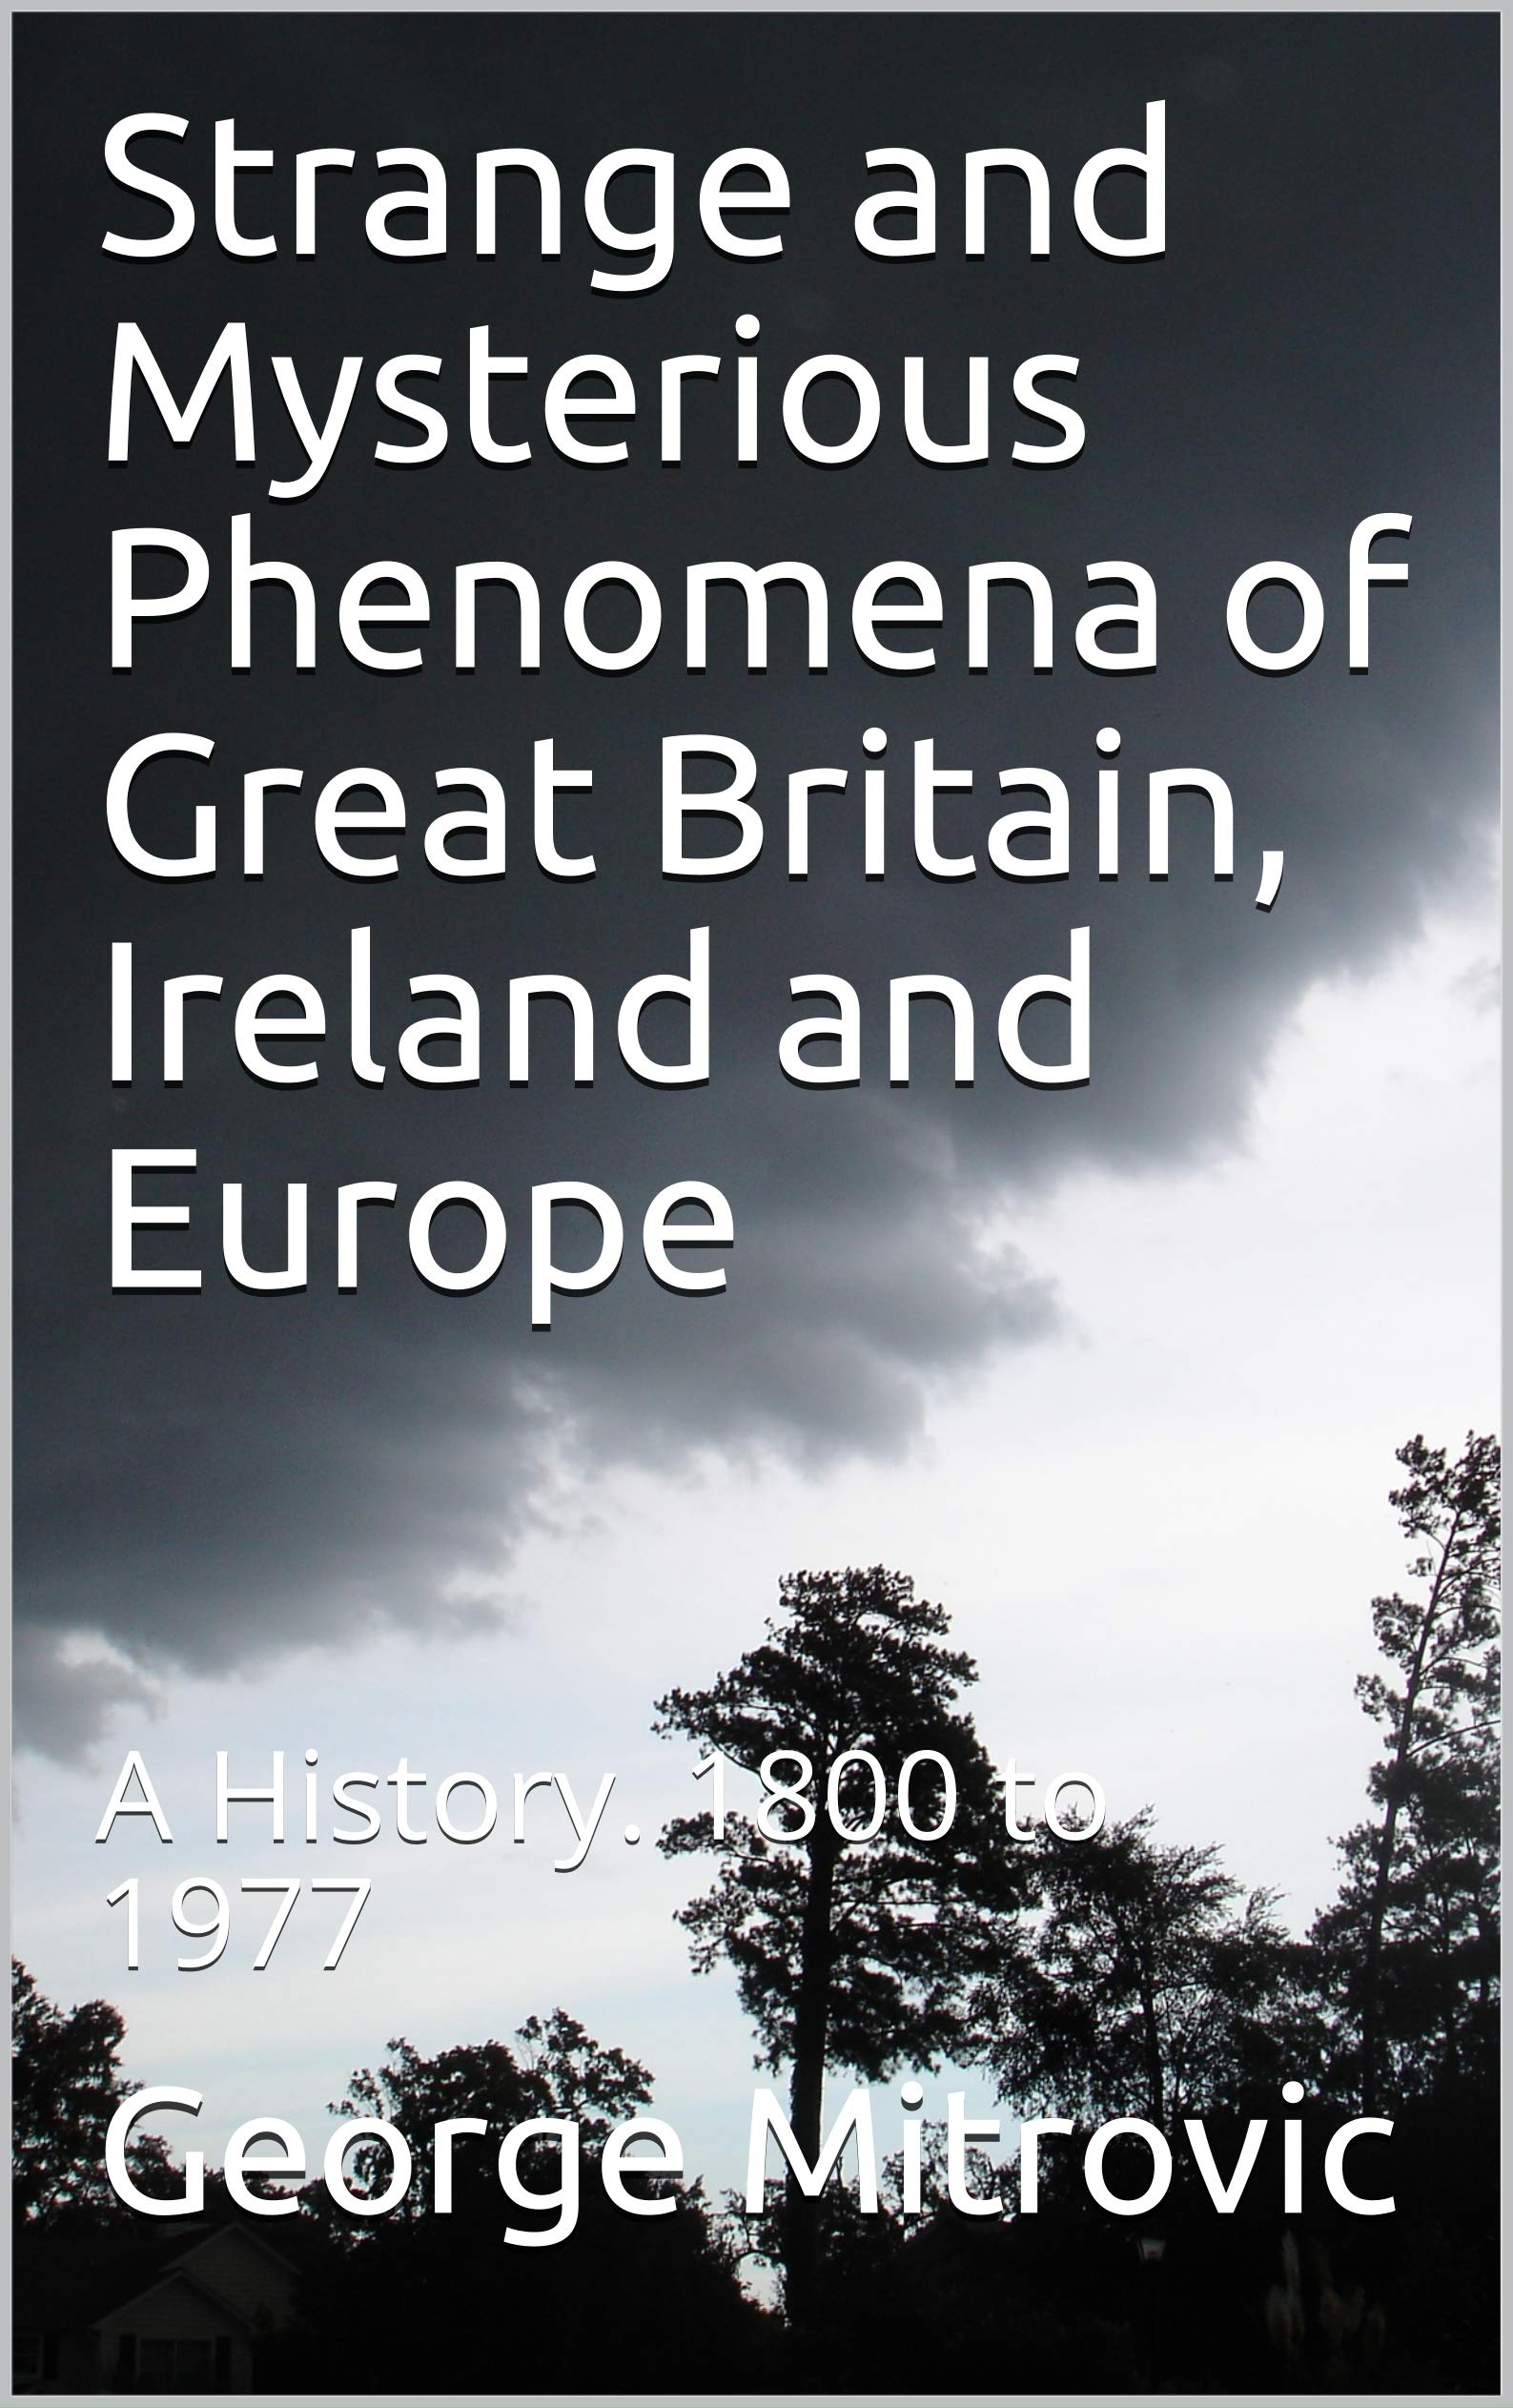 Strange and Mysterious Phenomena of Great Britain, Ireland and Europe: A History. 1800 to 1977